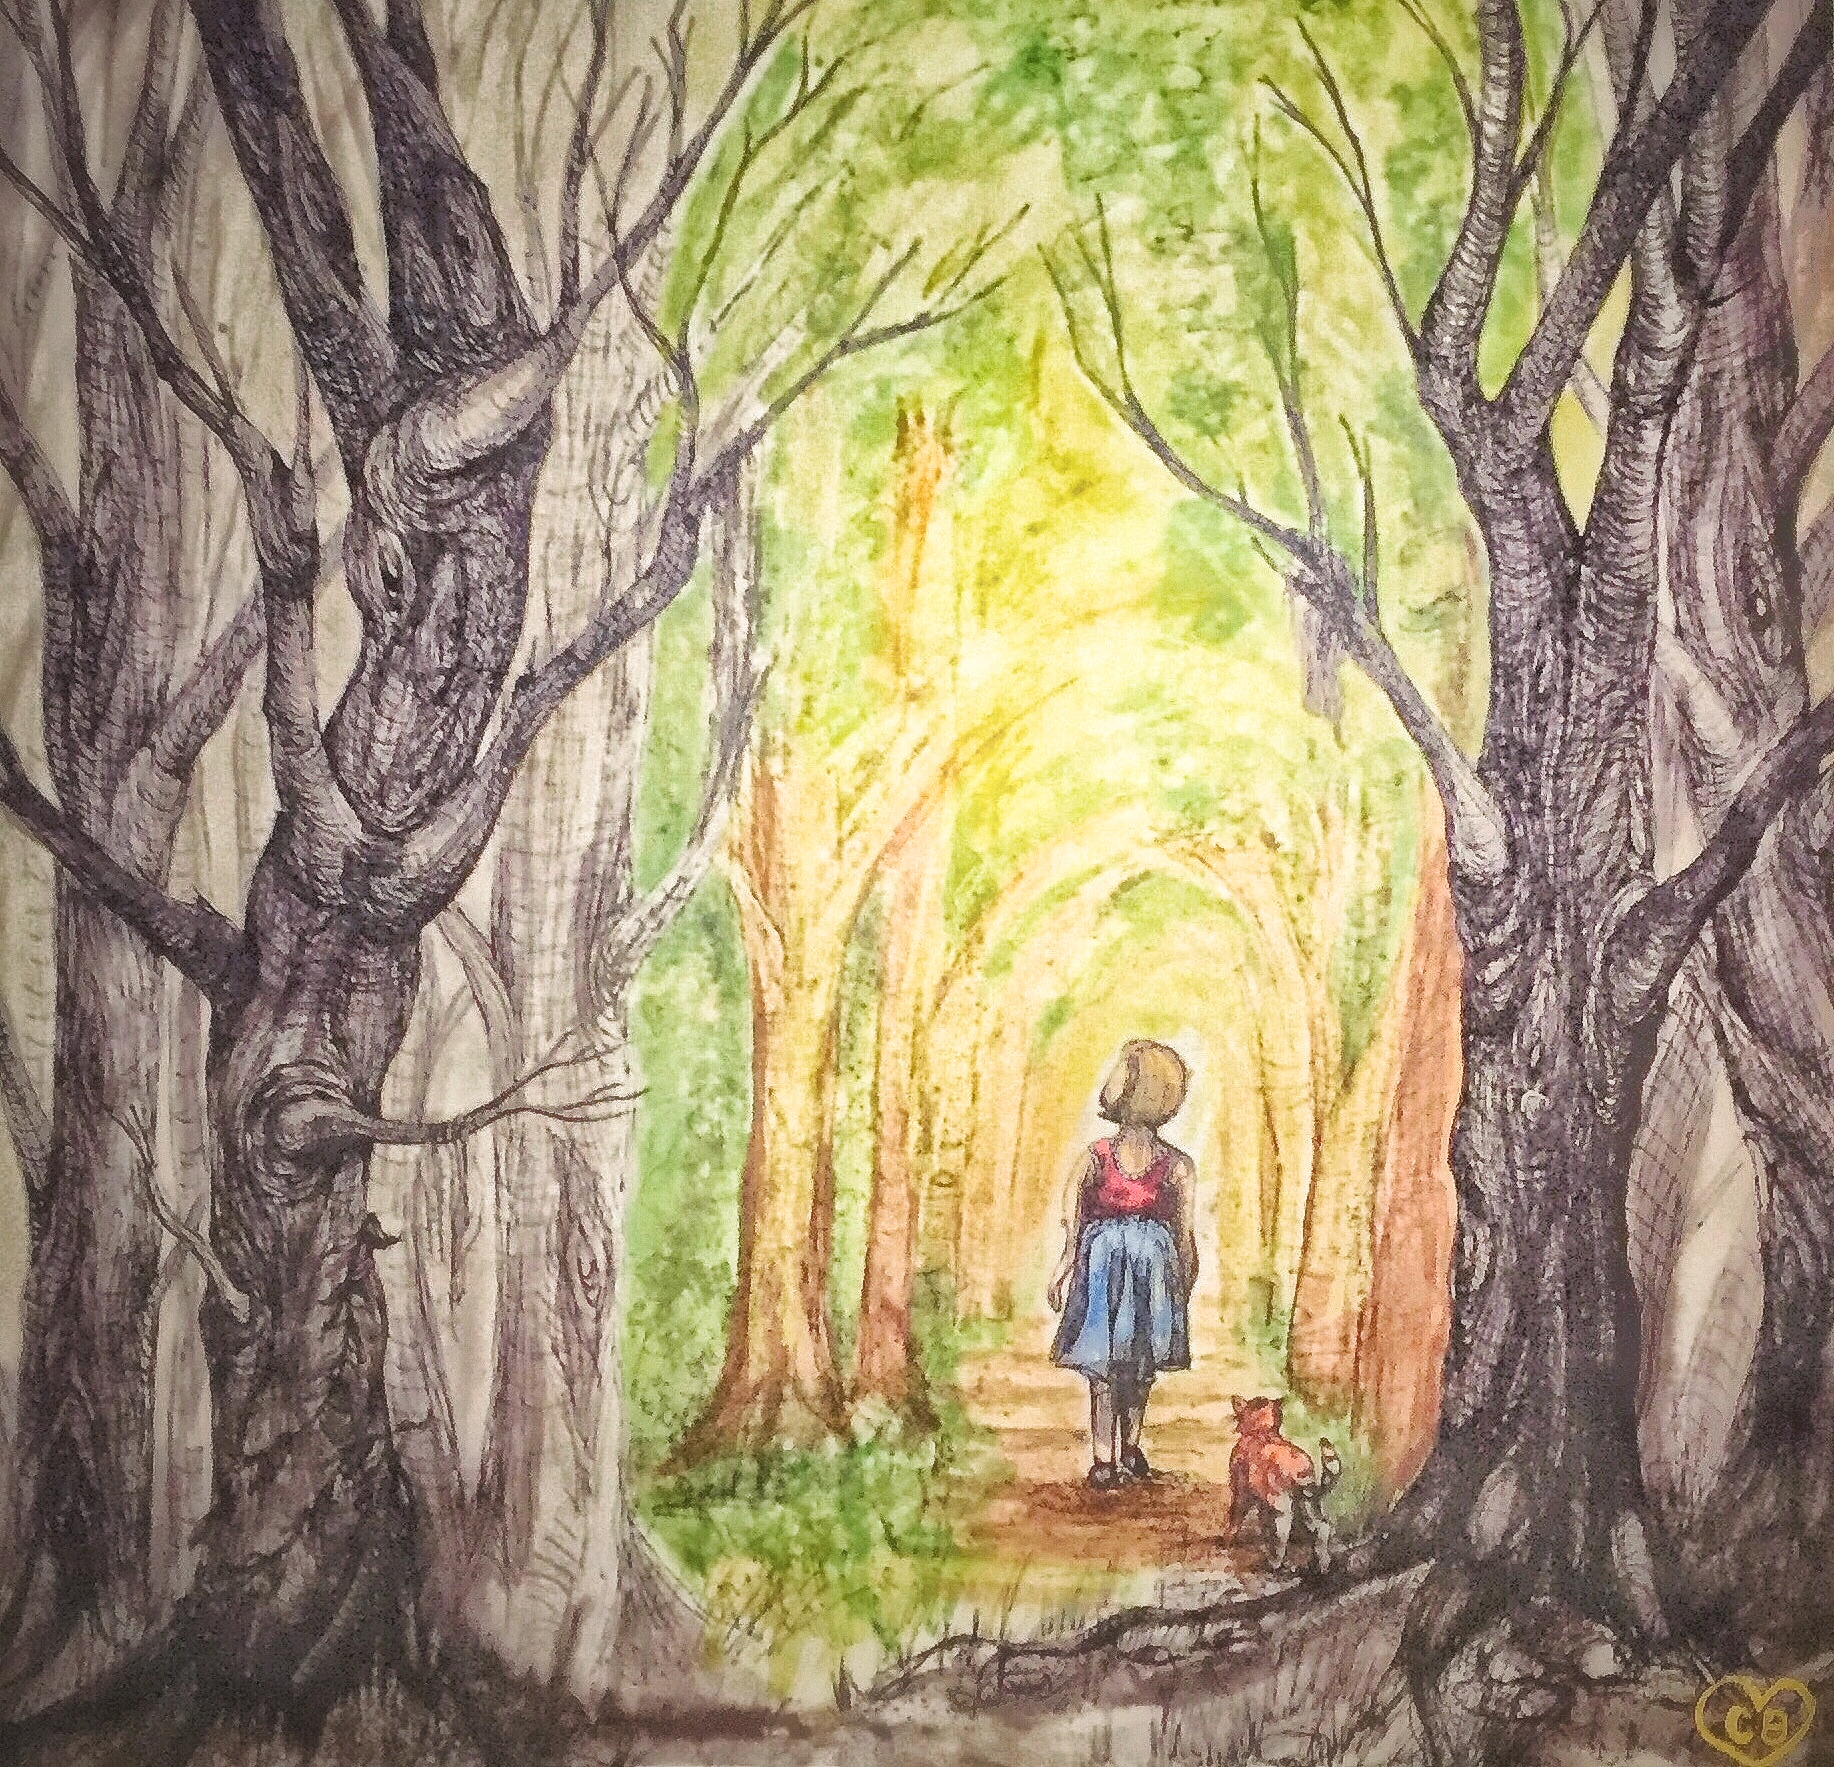 An illustration of a woman walking through a forest.